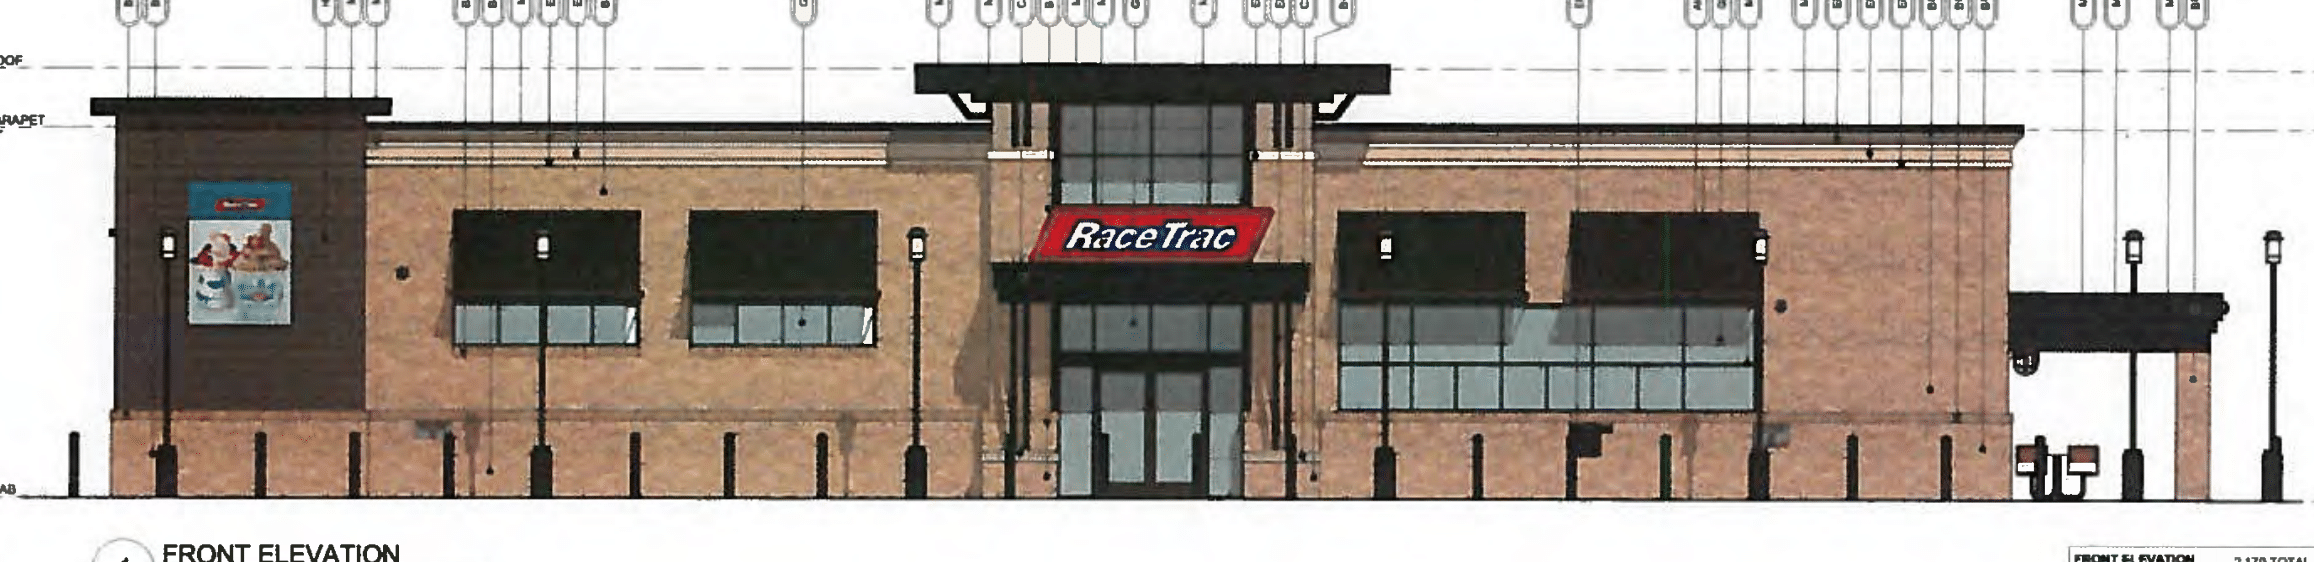 Race trac rendering1